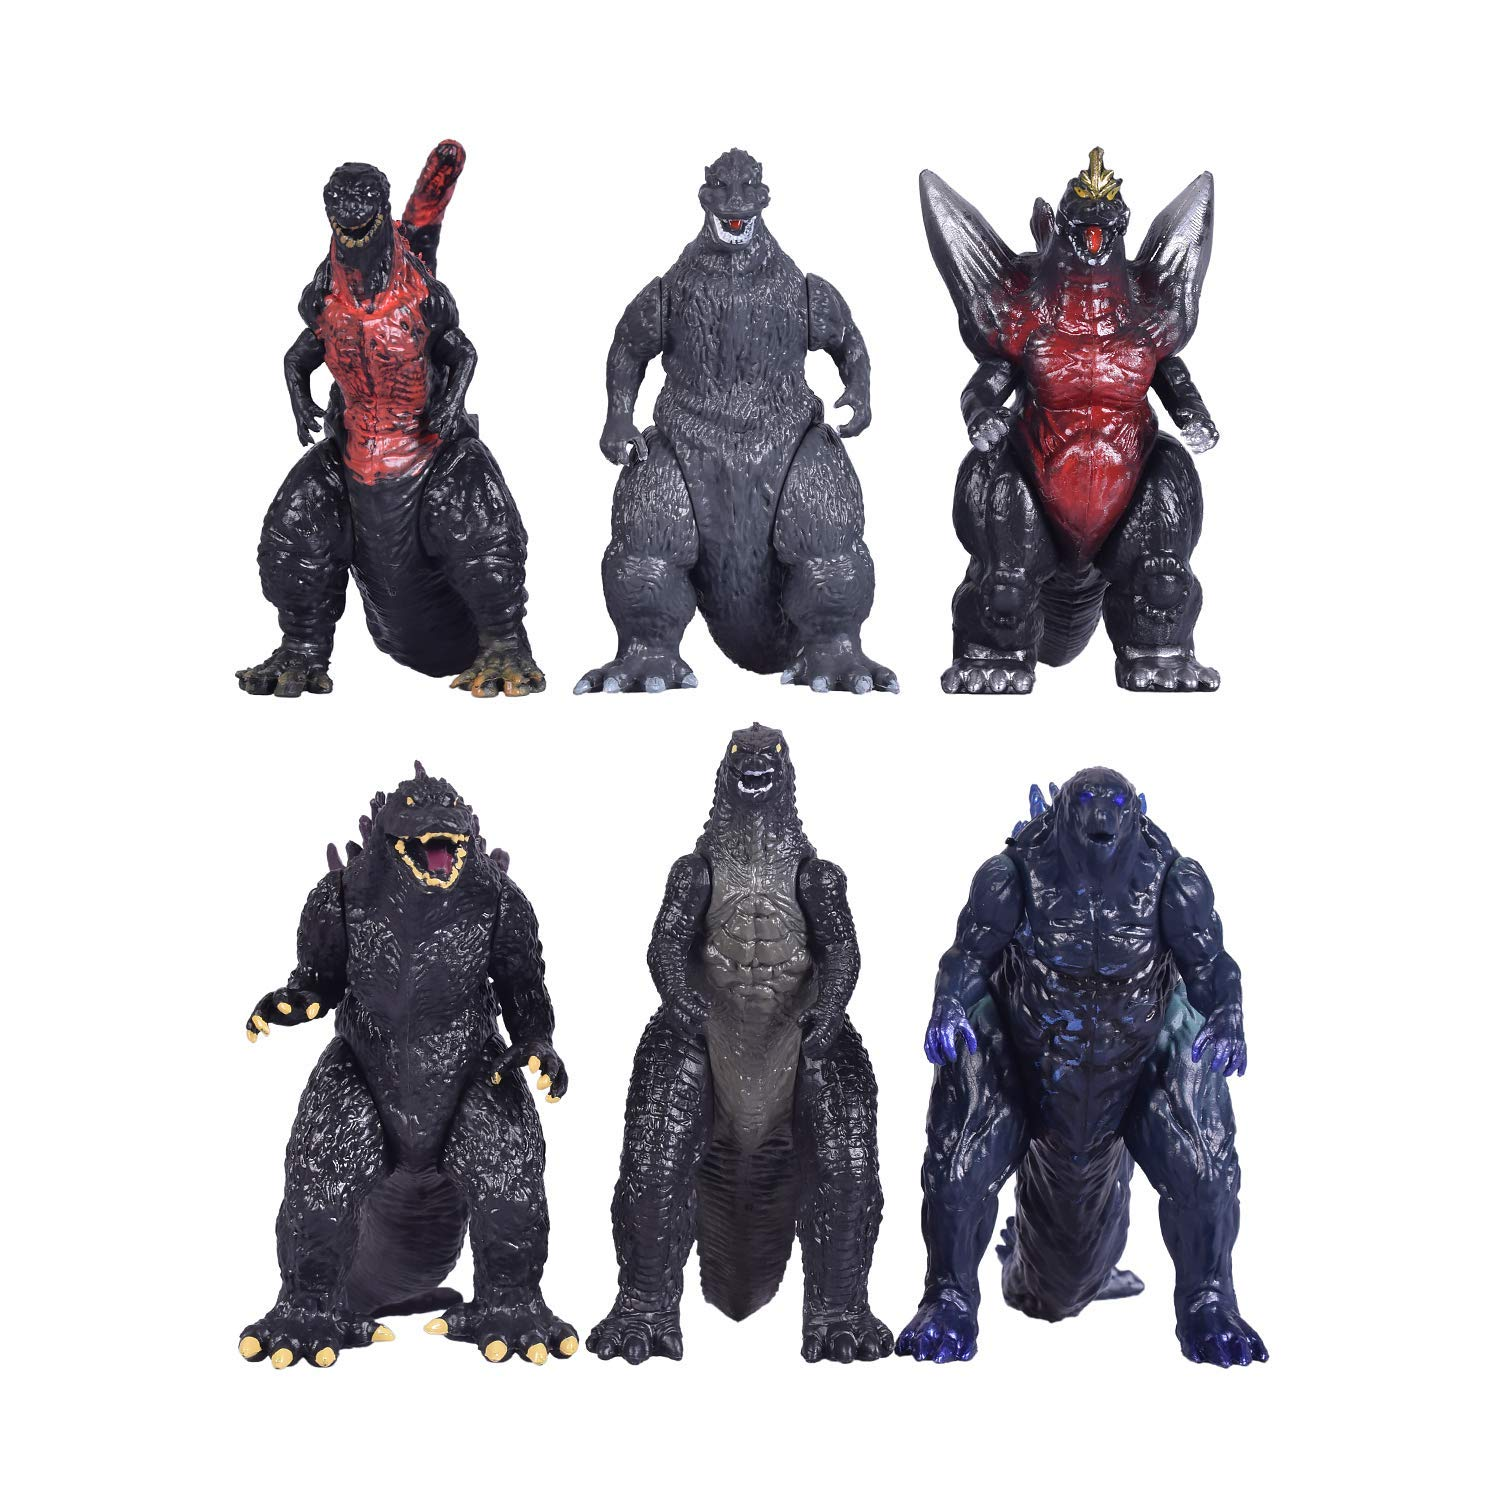 MALUNGMA 6pcs Godzilla Dinosaur with Movable Joint Playsets Mini Toys Action Figures Kids Gift